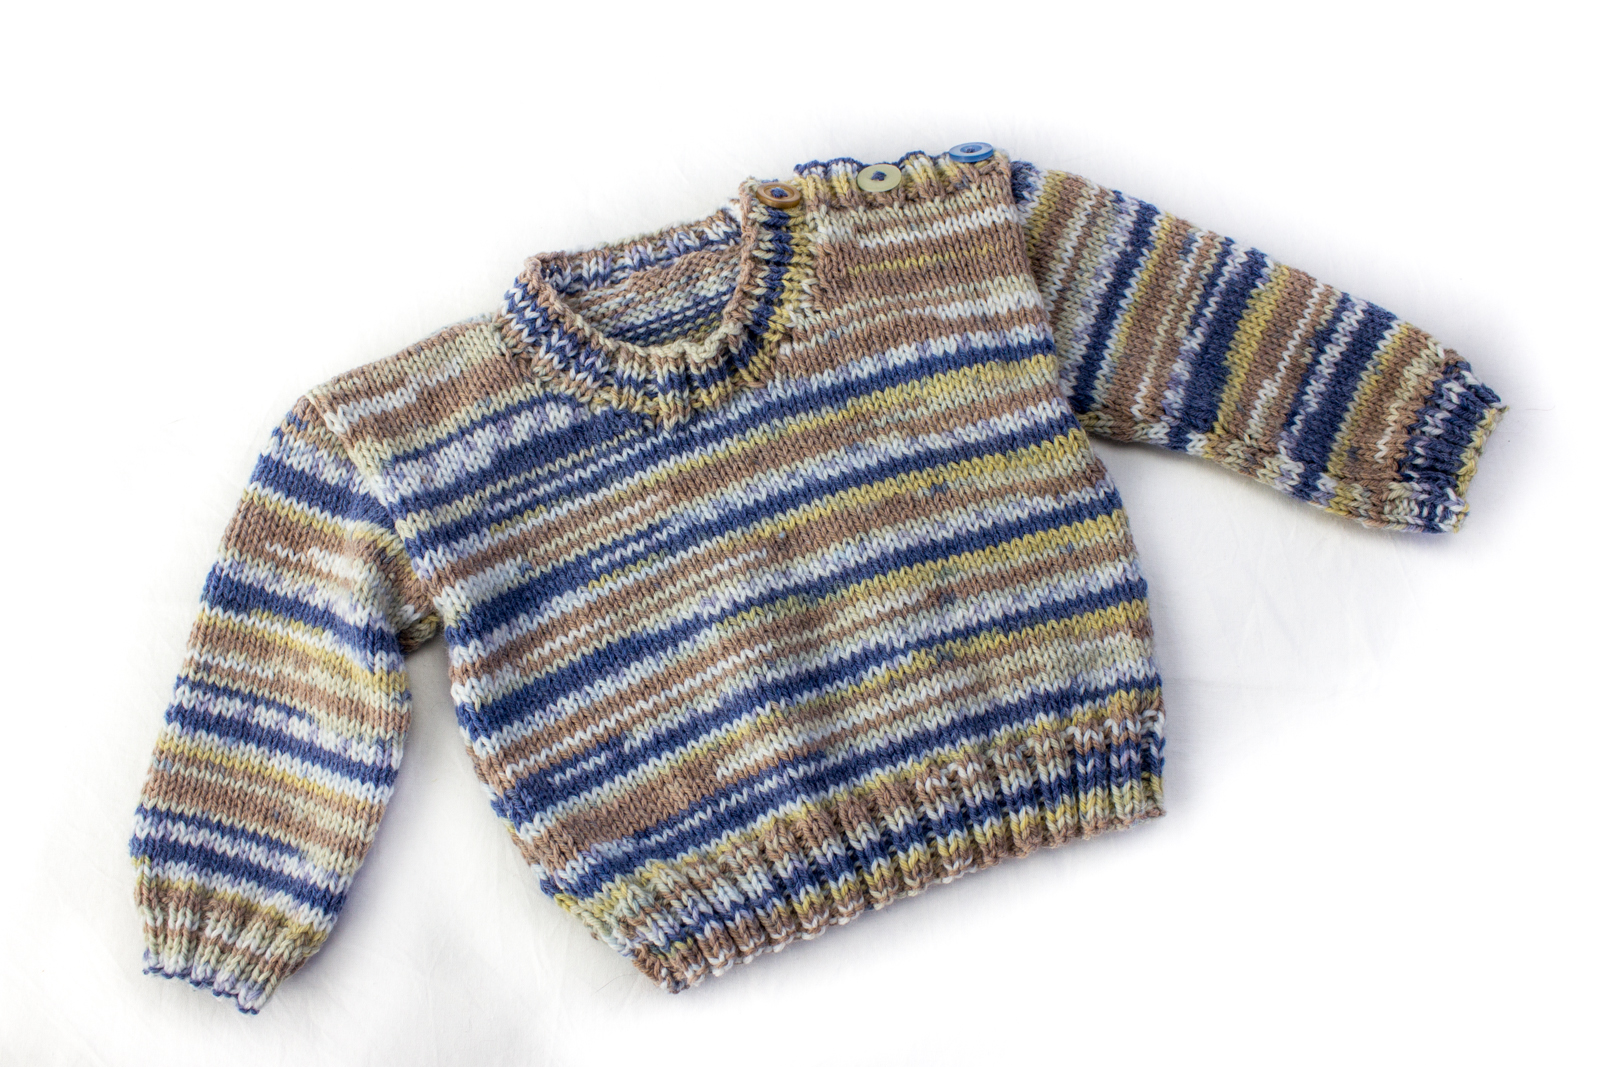 KNITTING PATTERN, Shoulder Buttoned Sweater, 6 Sizes, Baby, Toddler, Kids Sizes, PDF, Easy Kids Pattern, Stylish Boy's Buttoned Sweater